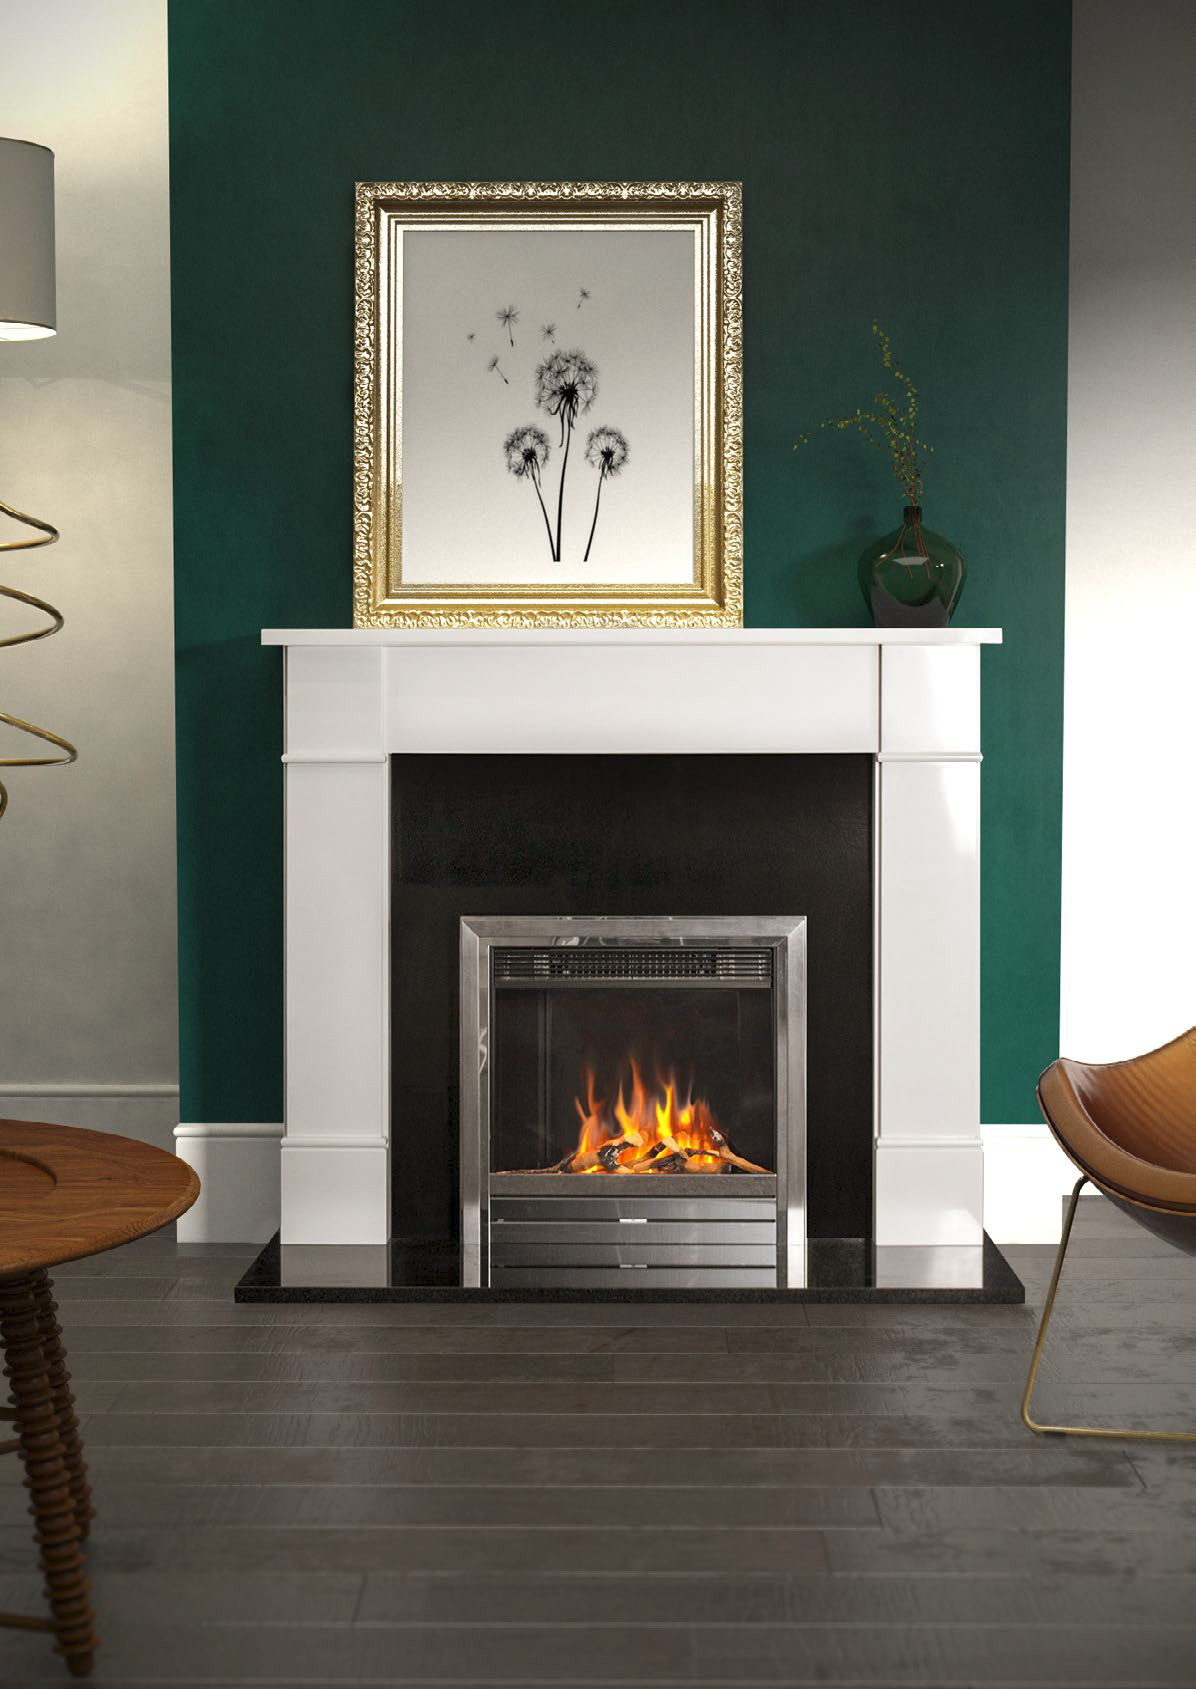 Gms Naxos Flames Amp Fireplaces Banbridge Belfast